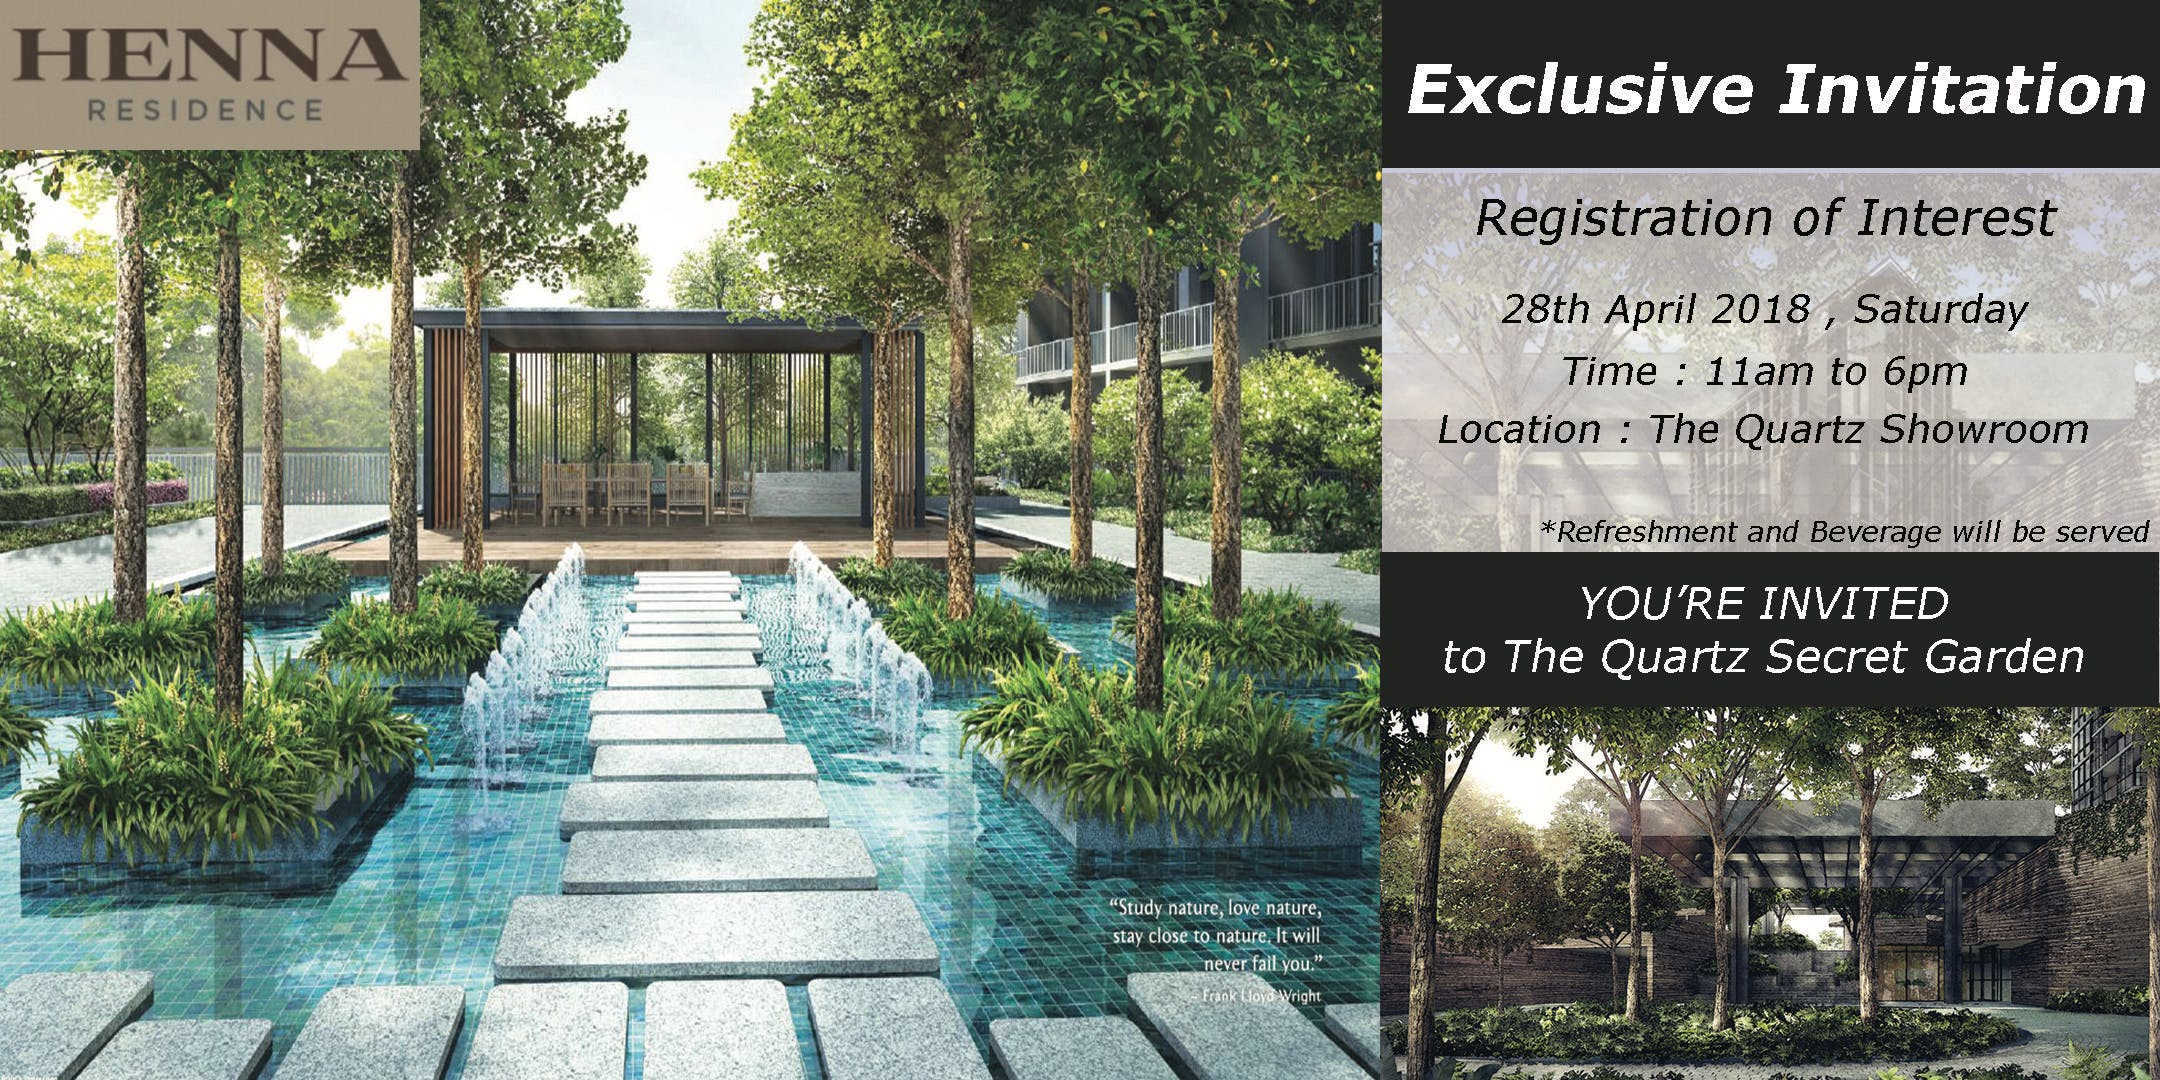 Henna Residence Register Interest Event At The Quartz Showroom